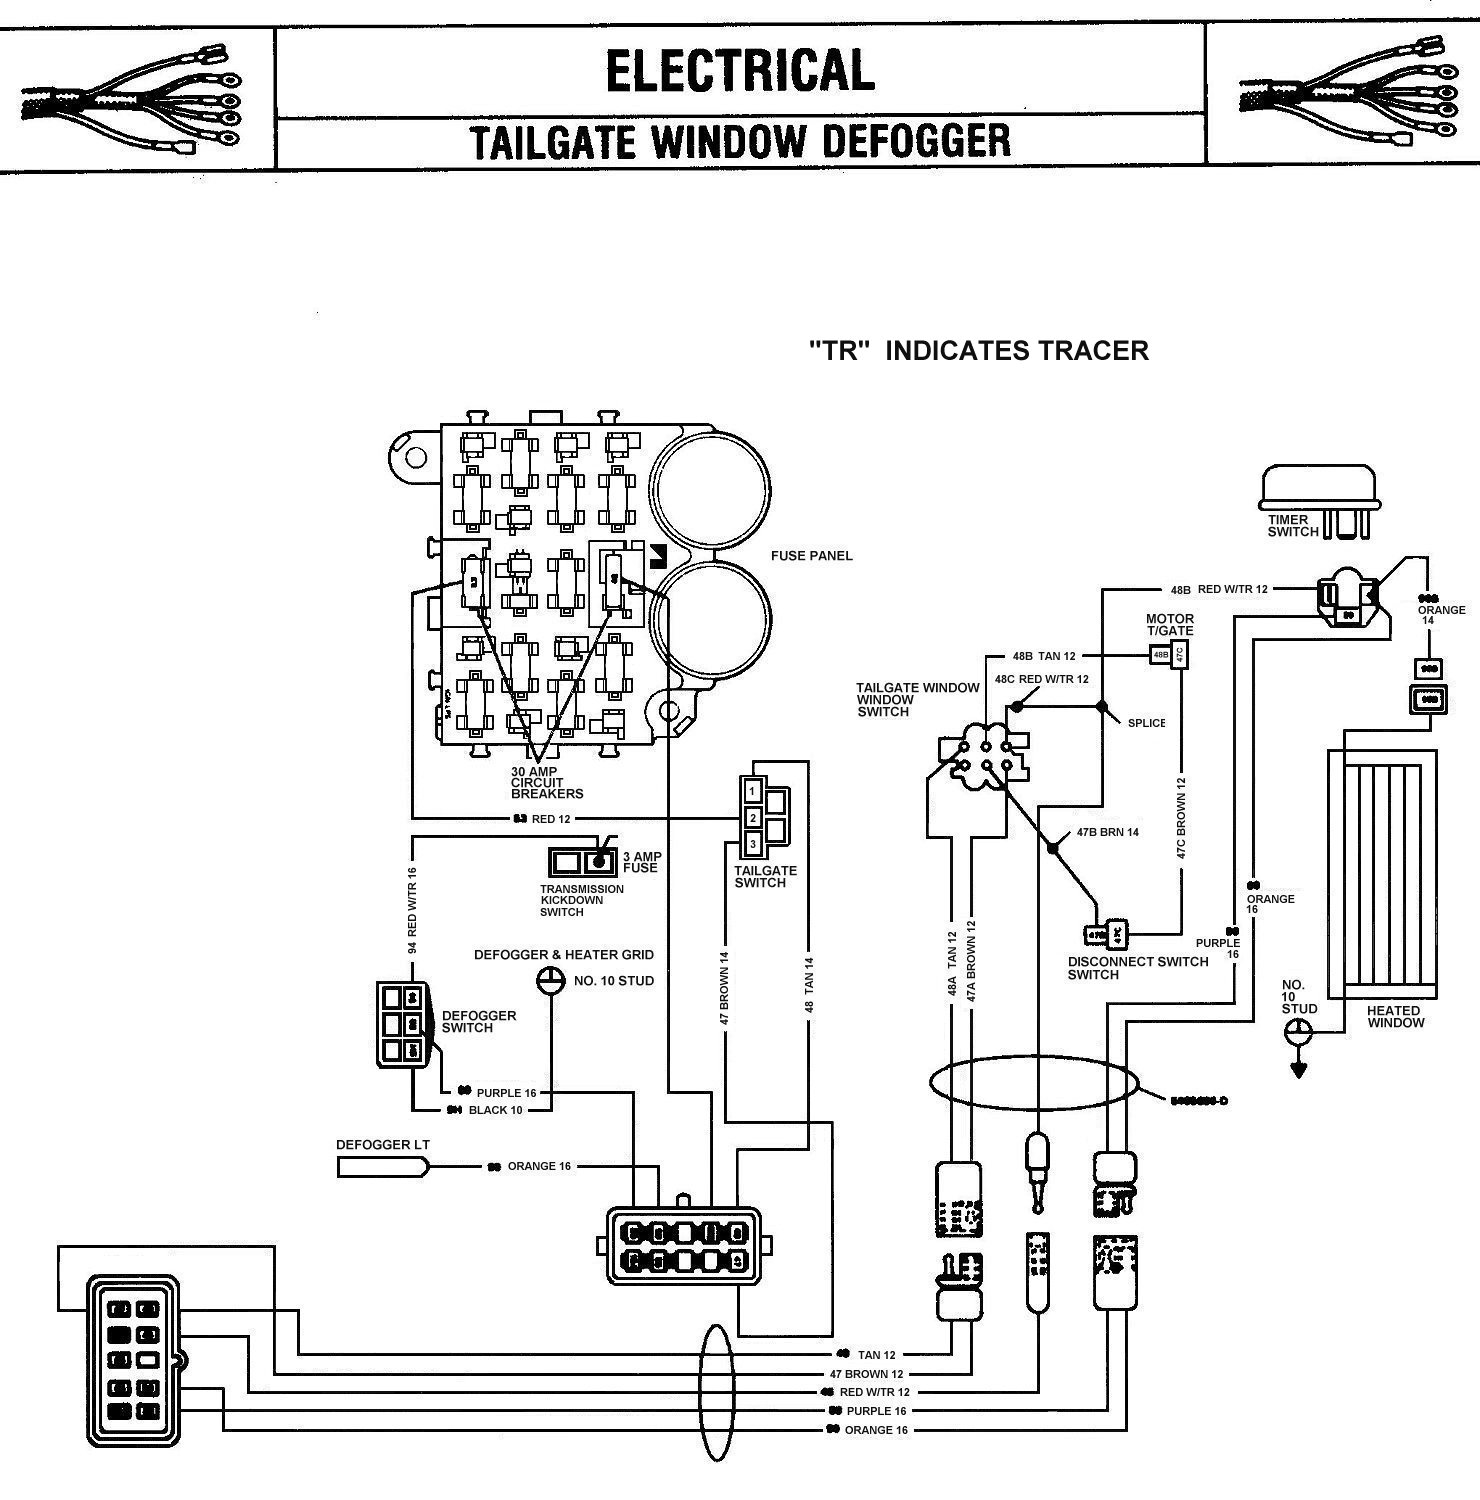 hight resolution of tom oljeep collins fsj wiring page jeep patriot wiring diagram 1984 1986 rear window